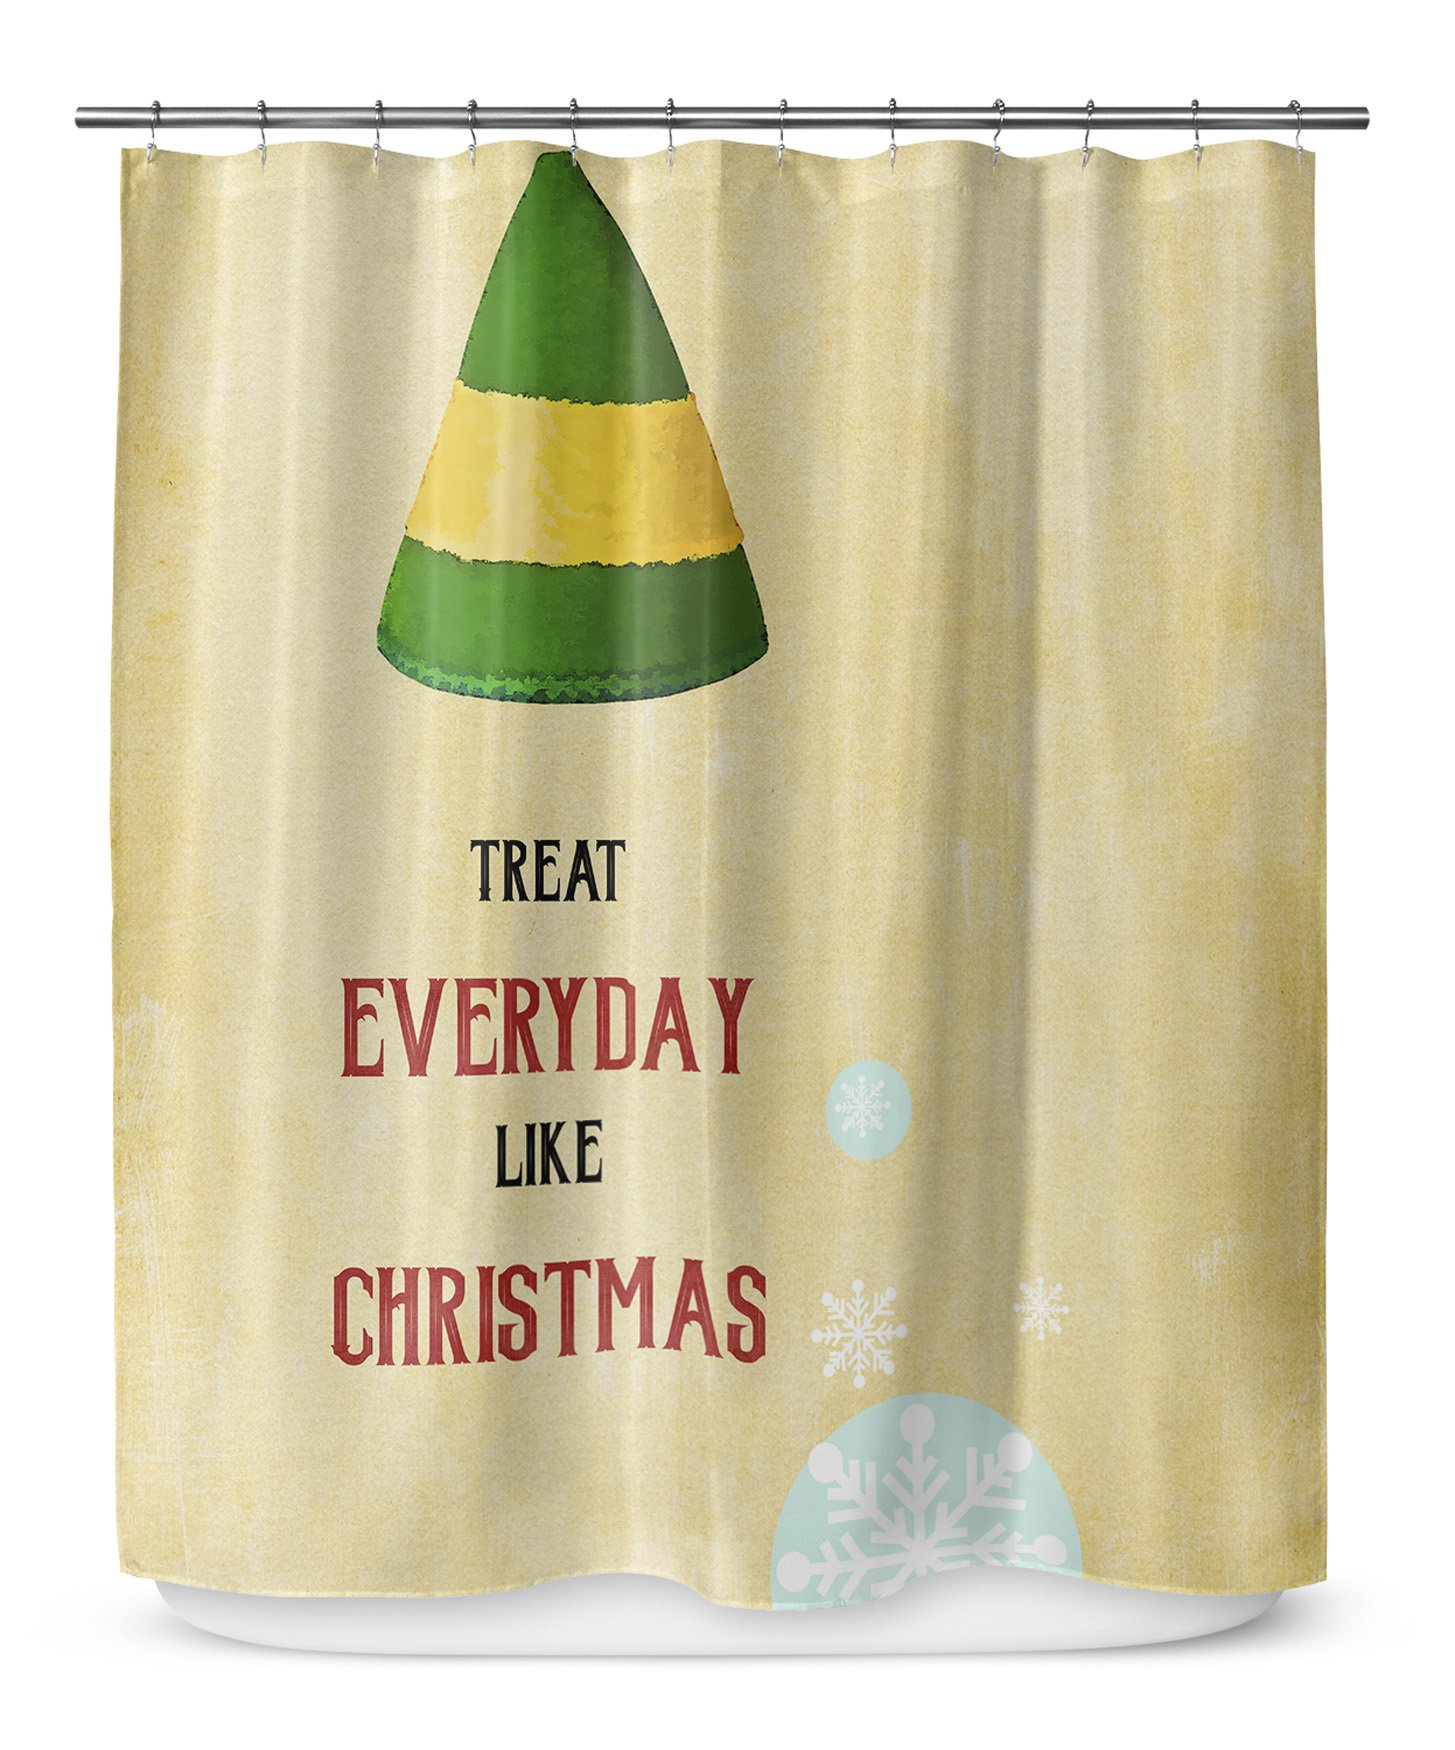 KAVKA DESIGNS Everyday Christmas Shower Curtain, (Gold/Red/Green) - TRADITIONS Collection, Size: 70x72 - (TELAVC1046SPLSC)